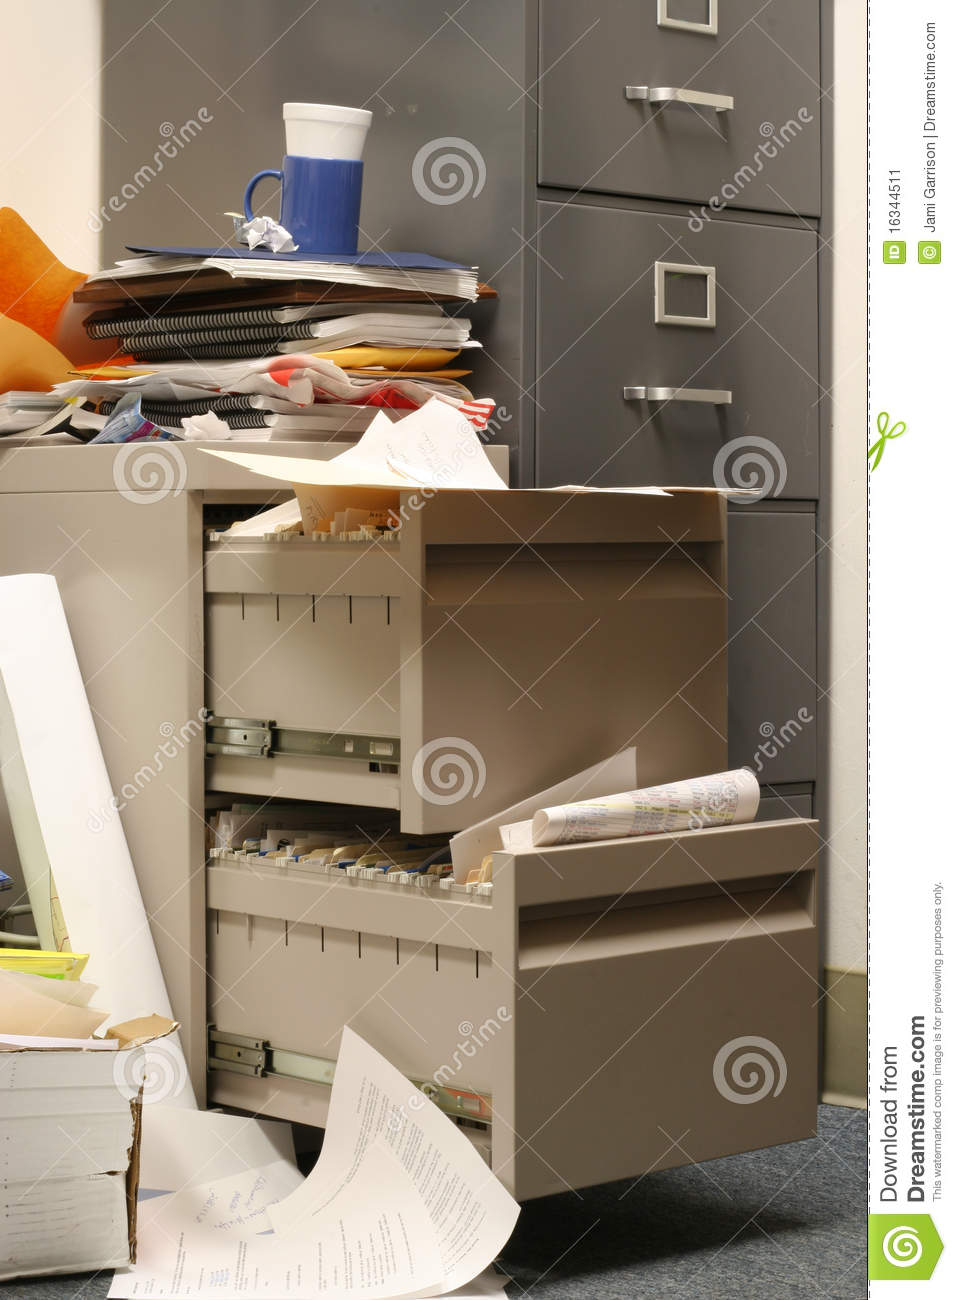 Messy Filing Cabinet stock image Image of compartment  16344511